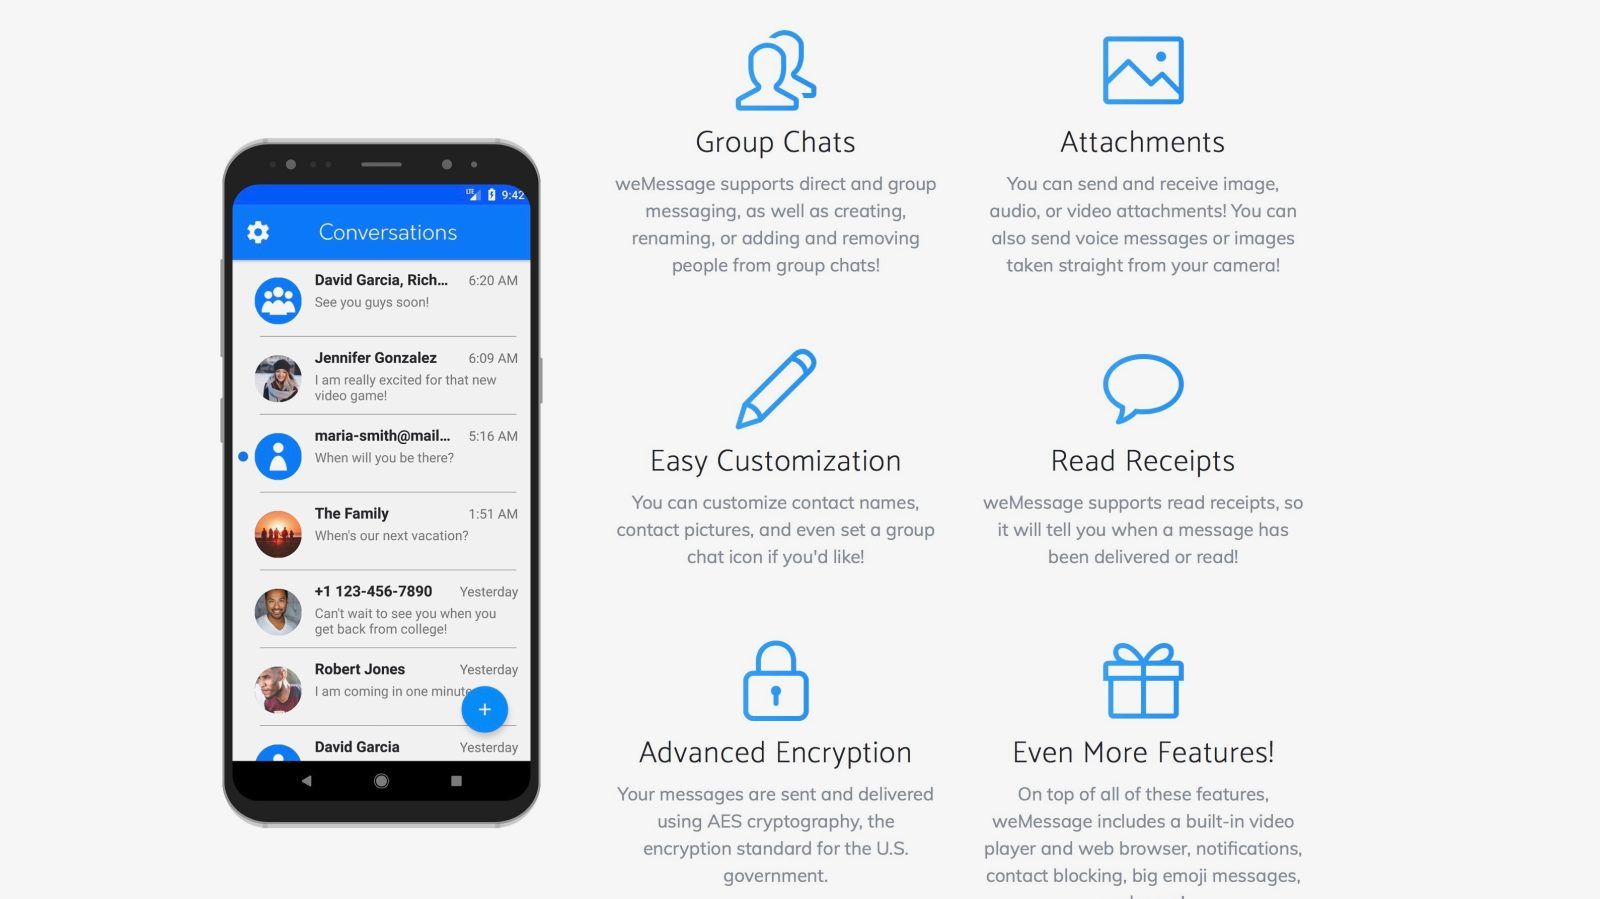 This app claims to bring iMessage support to Android, but don't